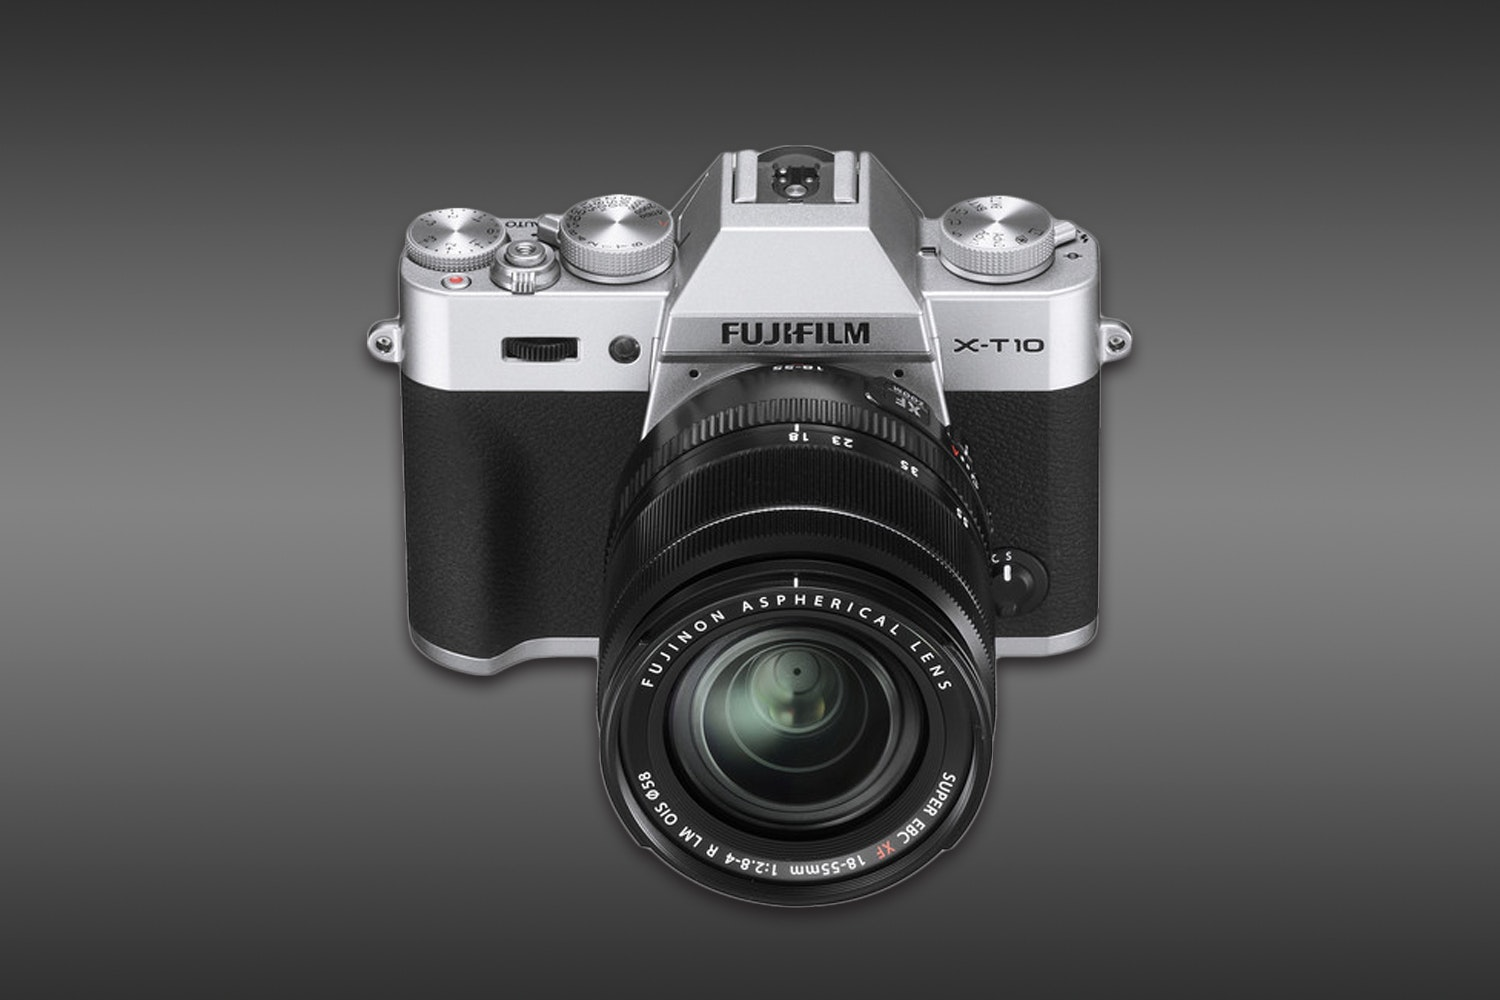 Fujifilm X-T10 Mirrorless Body with 18-55mm Lens